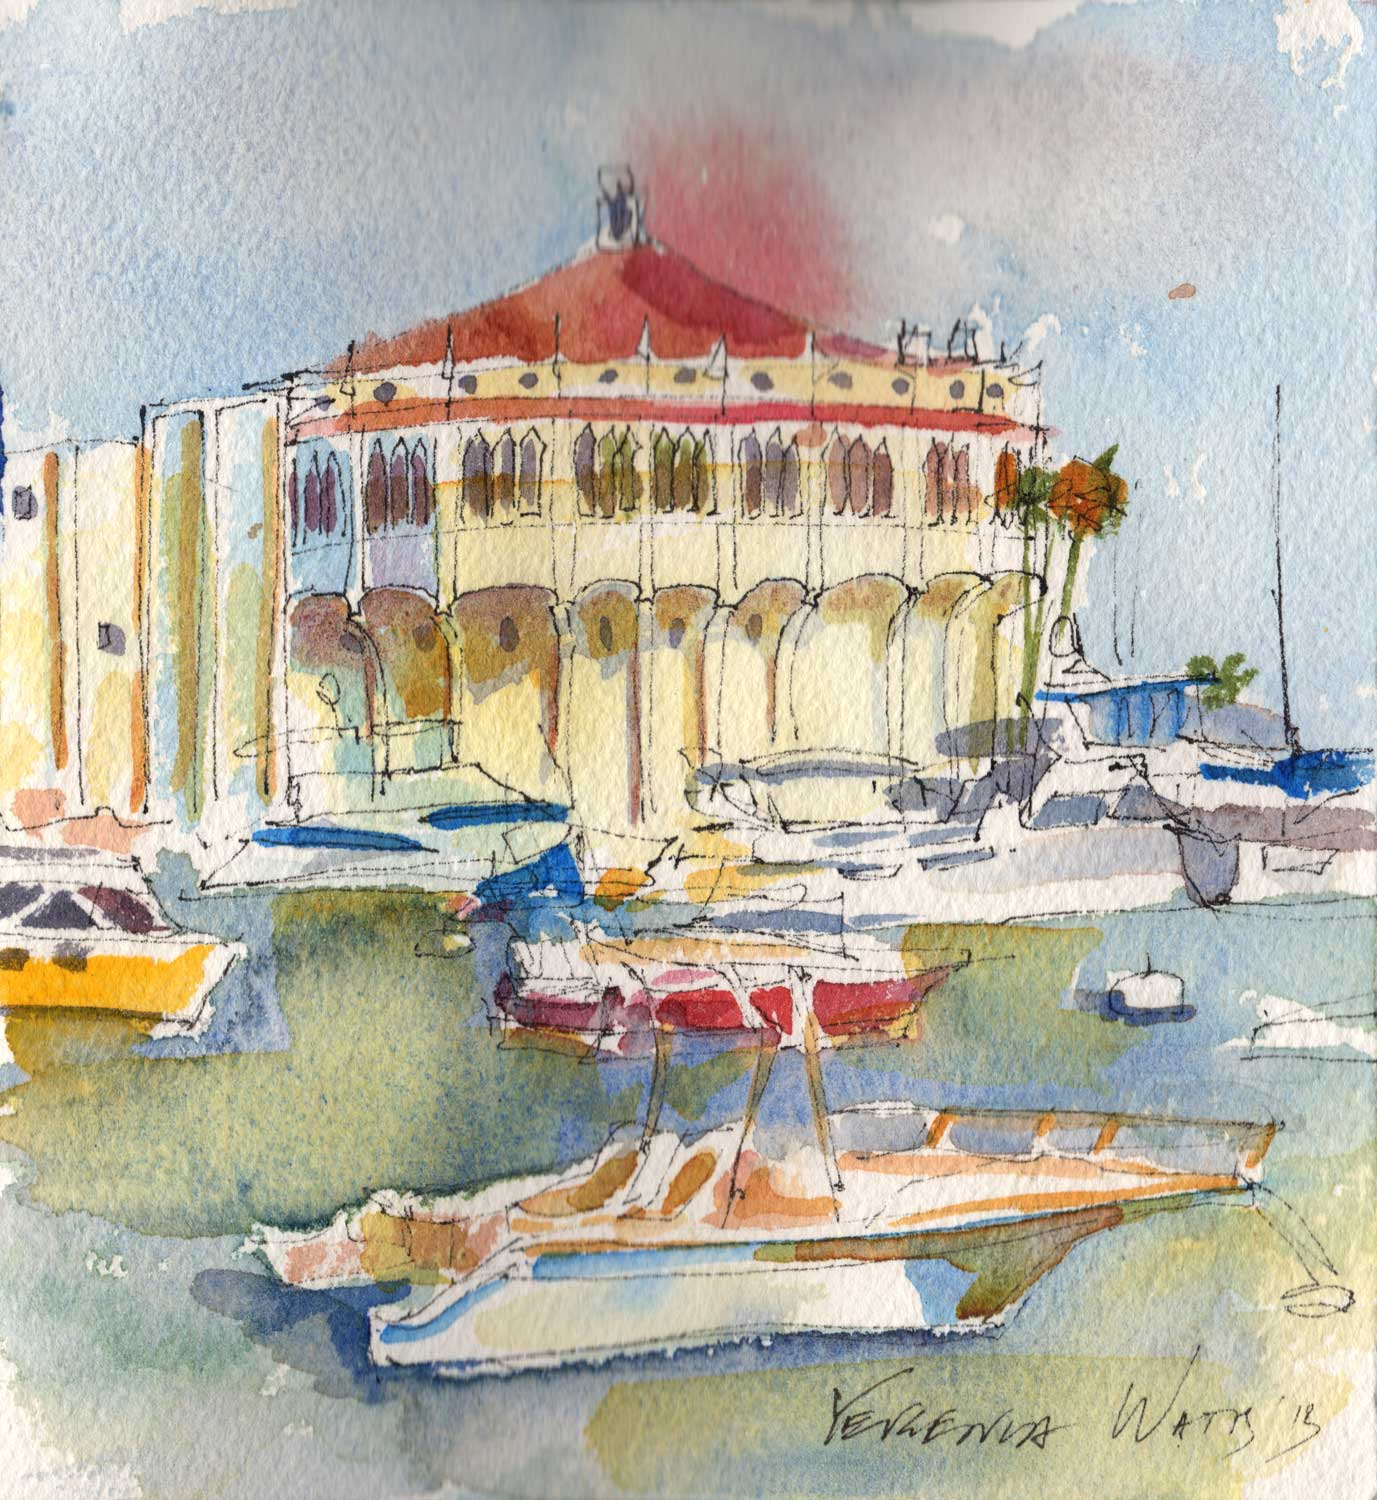 The Casino (which is not a casino but a movie theater) in Avalon. Pen and watercolor on paper.